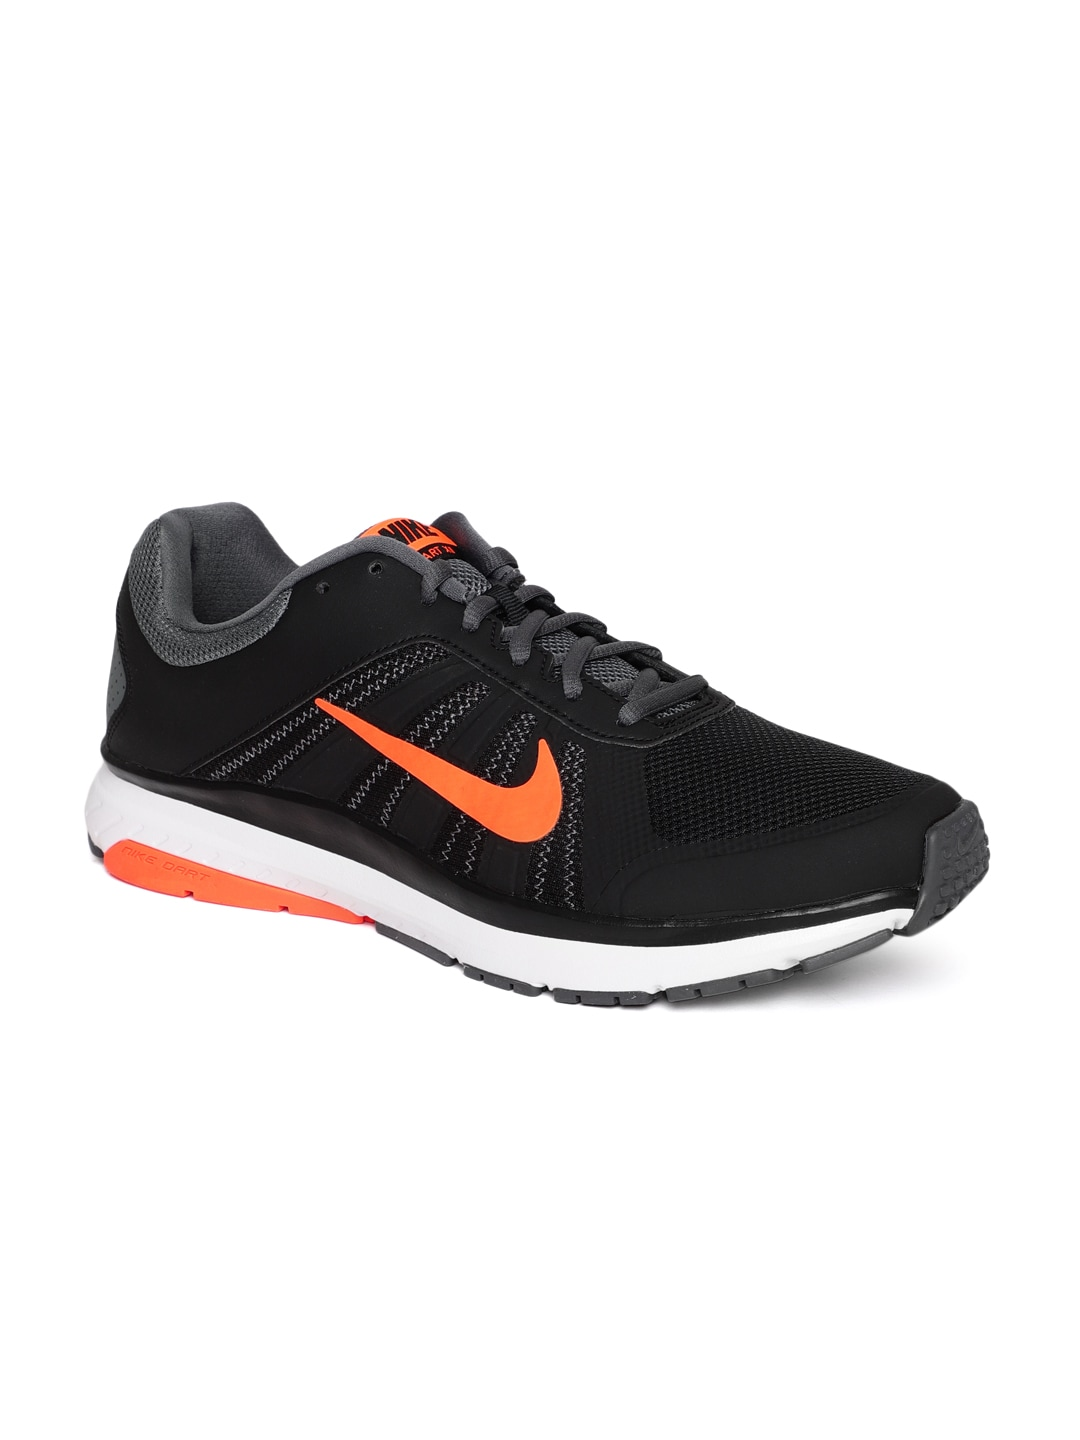 buy popular b9364 cafe2 Nike Running Shoes - Buy Nike Running Shoes Online   Myntra